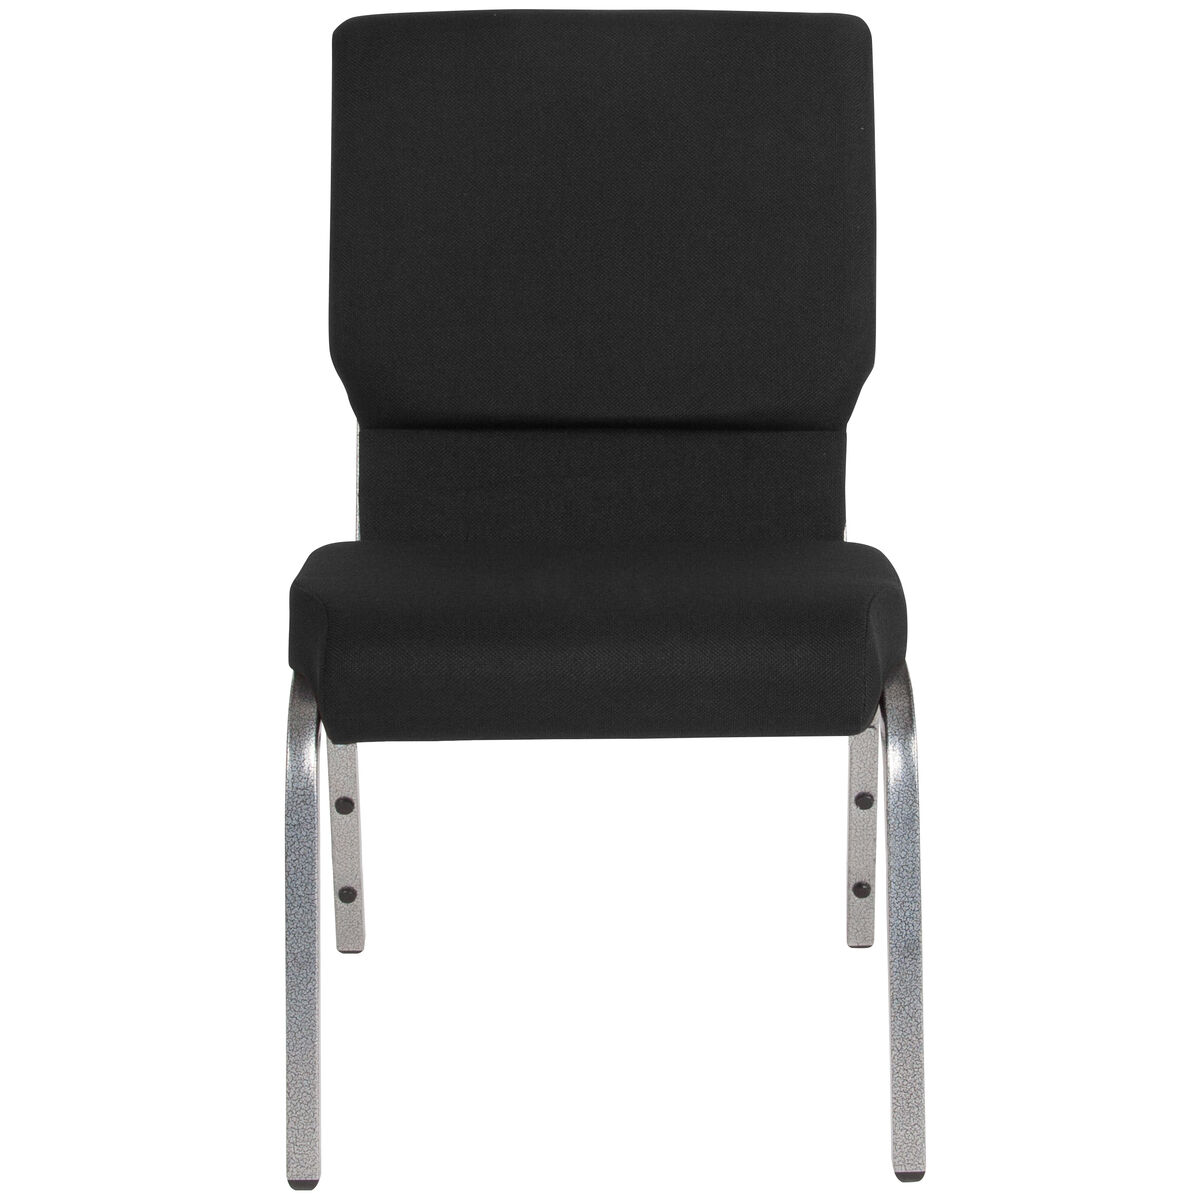 Black Fabric Church Chair Xu Ch 60096 Bk Sv Gg Bizchair Com